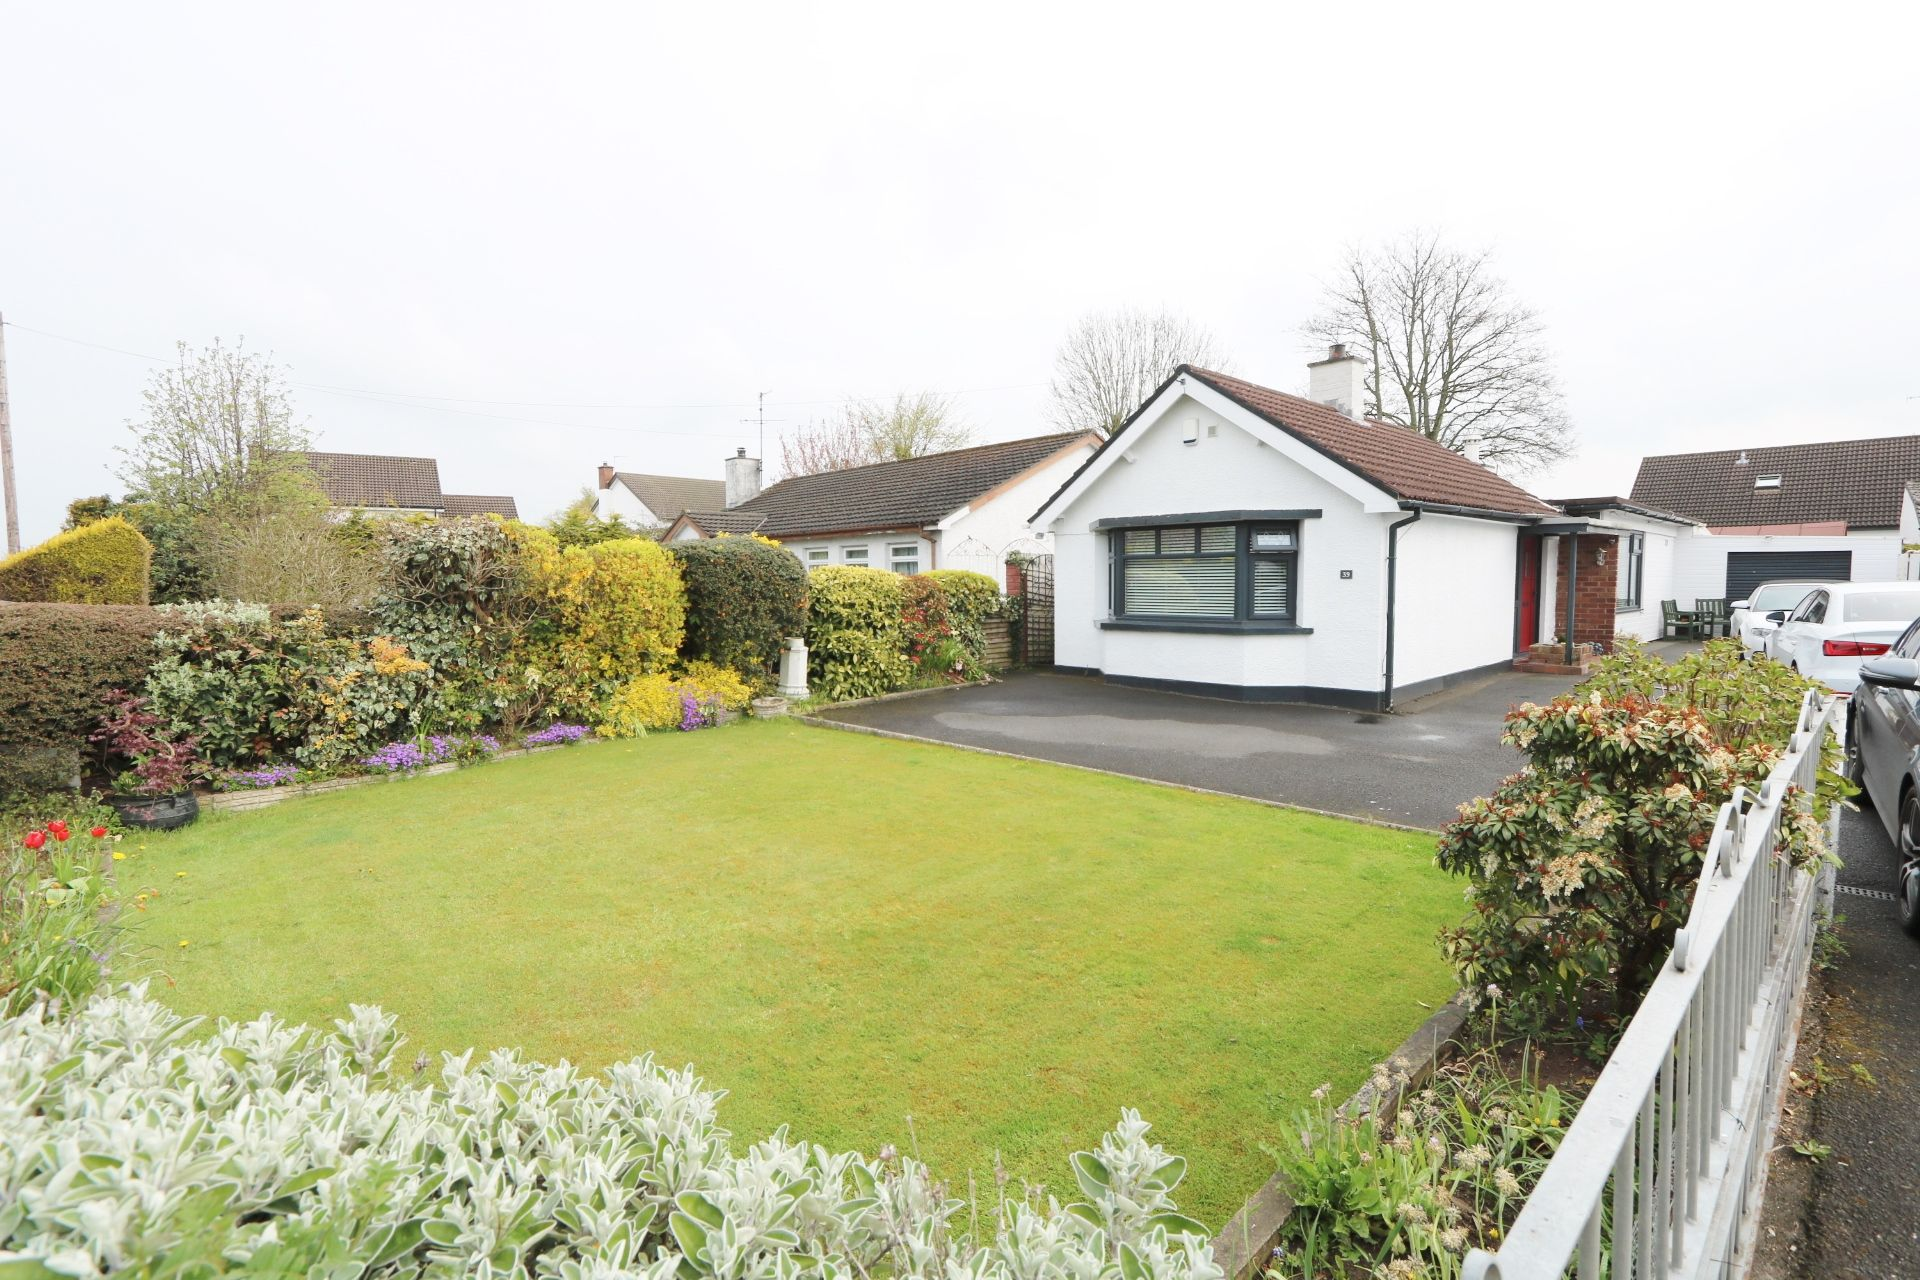 2 bedroom detached bungalow For Sale in Antrim - Property photograph